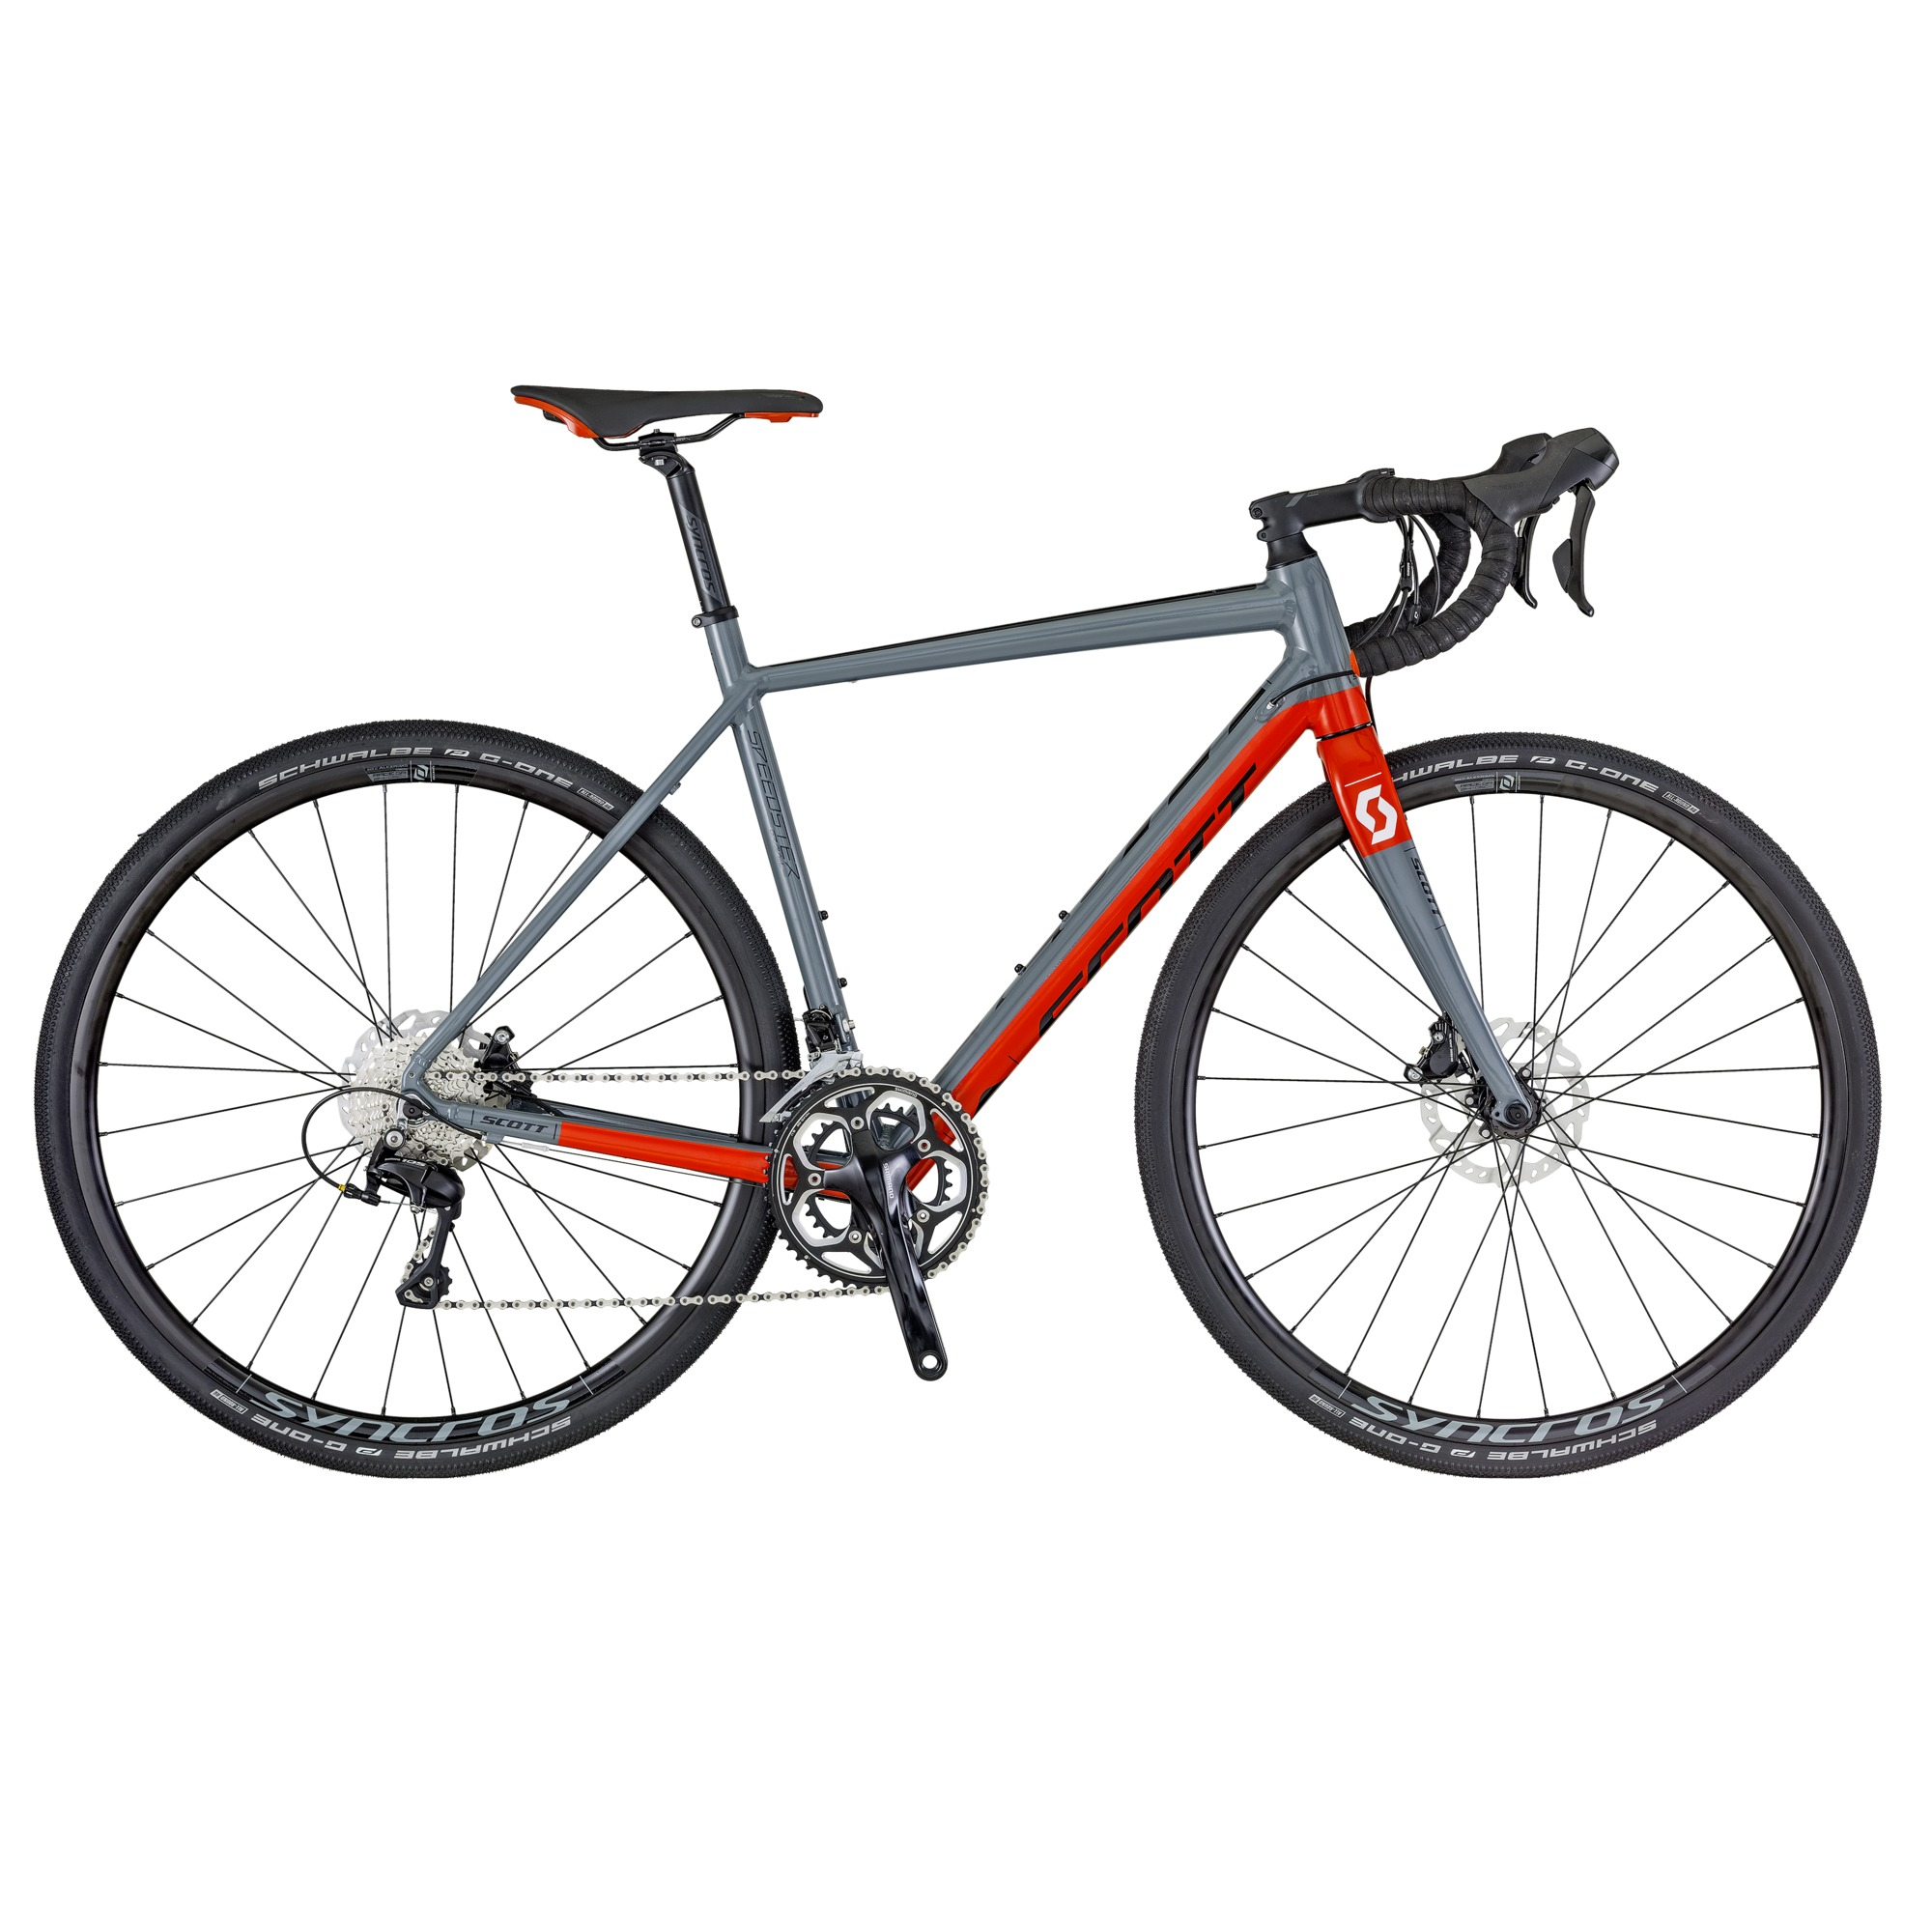 SCOTT Speedster Gravel 10 Disc Bike 2XL61 - Zweirad Homann